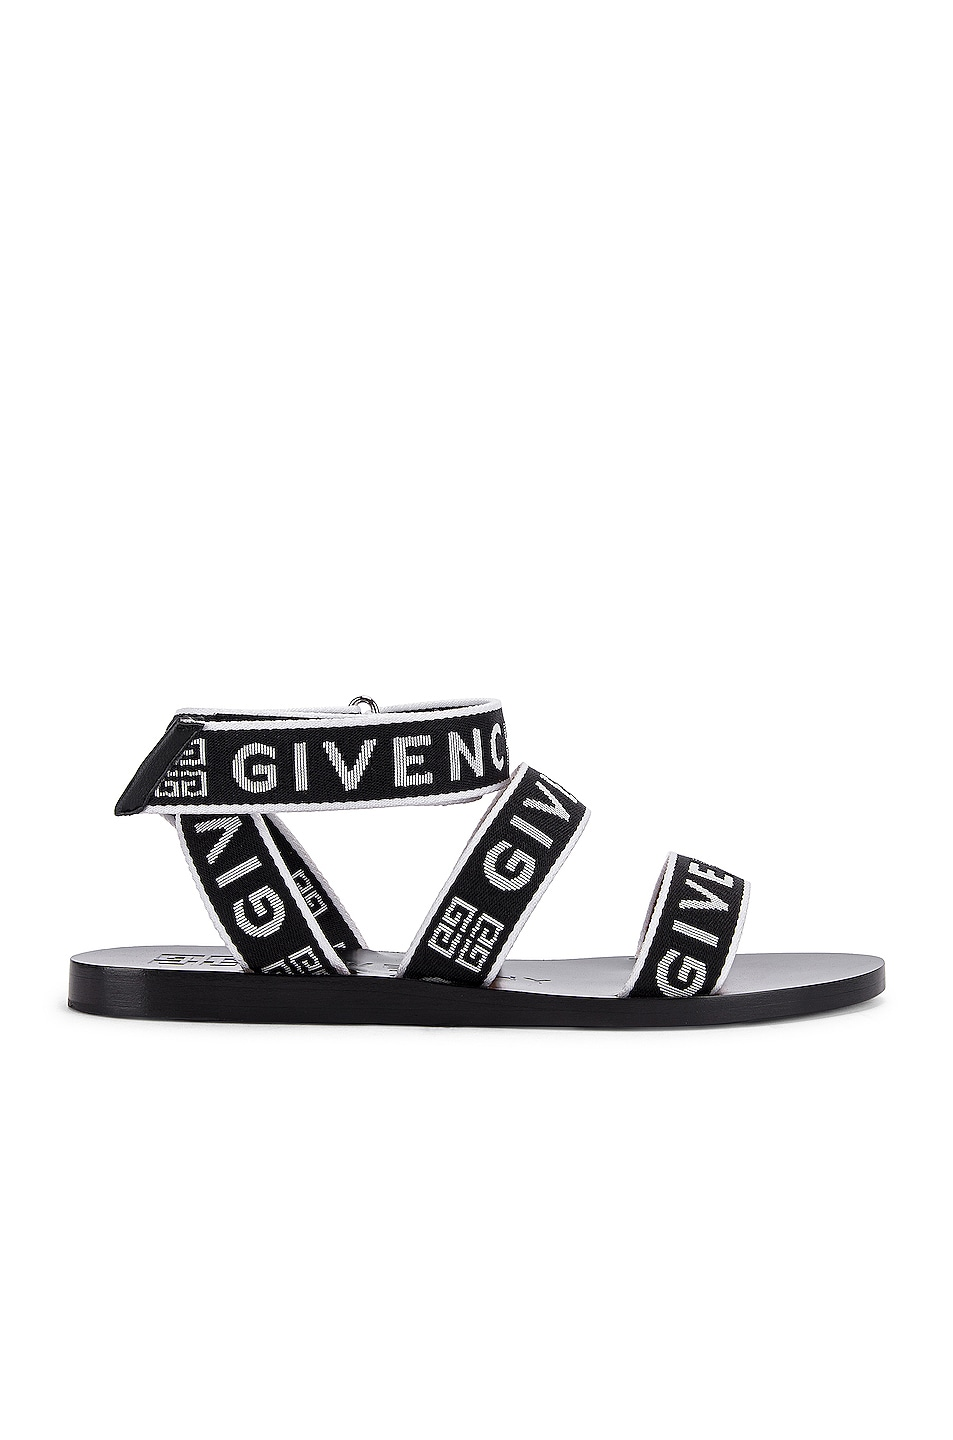 Image 1 of Givenchy Ankle Strap Sandals in Black & White